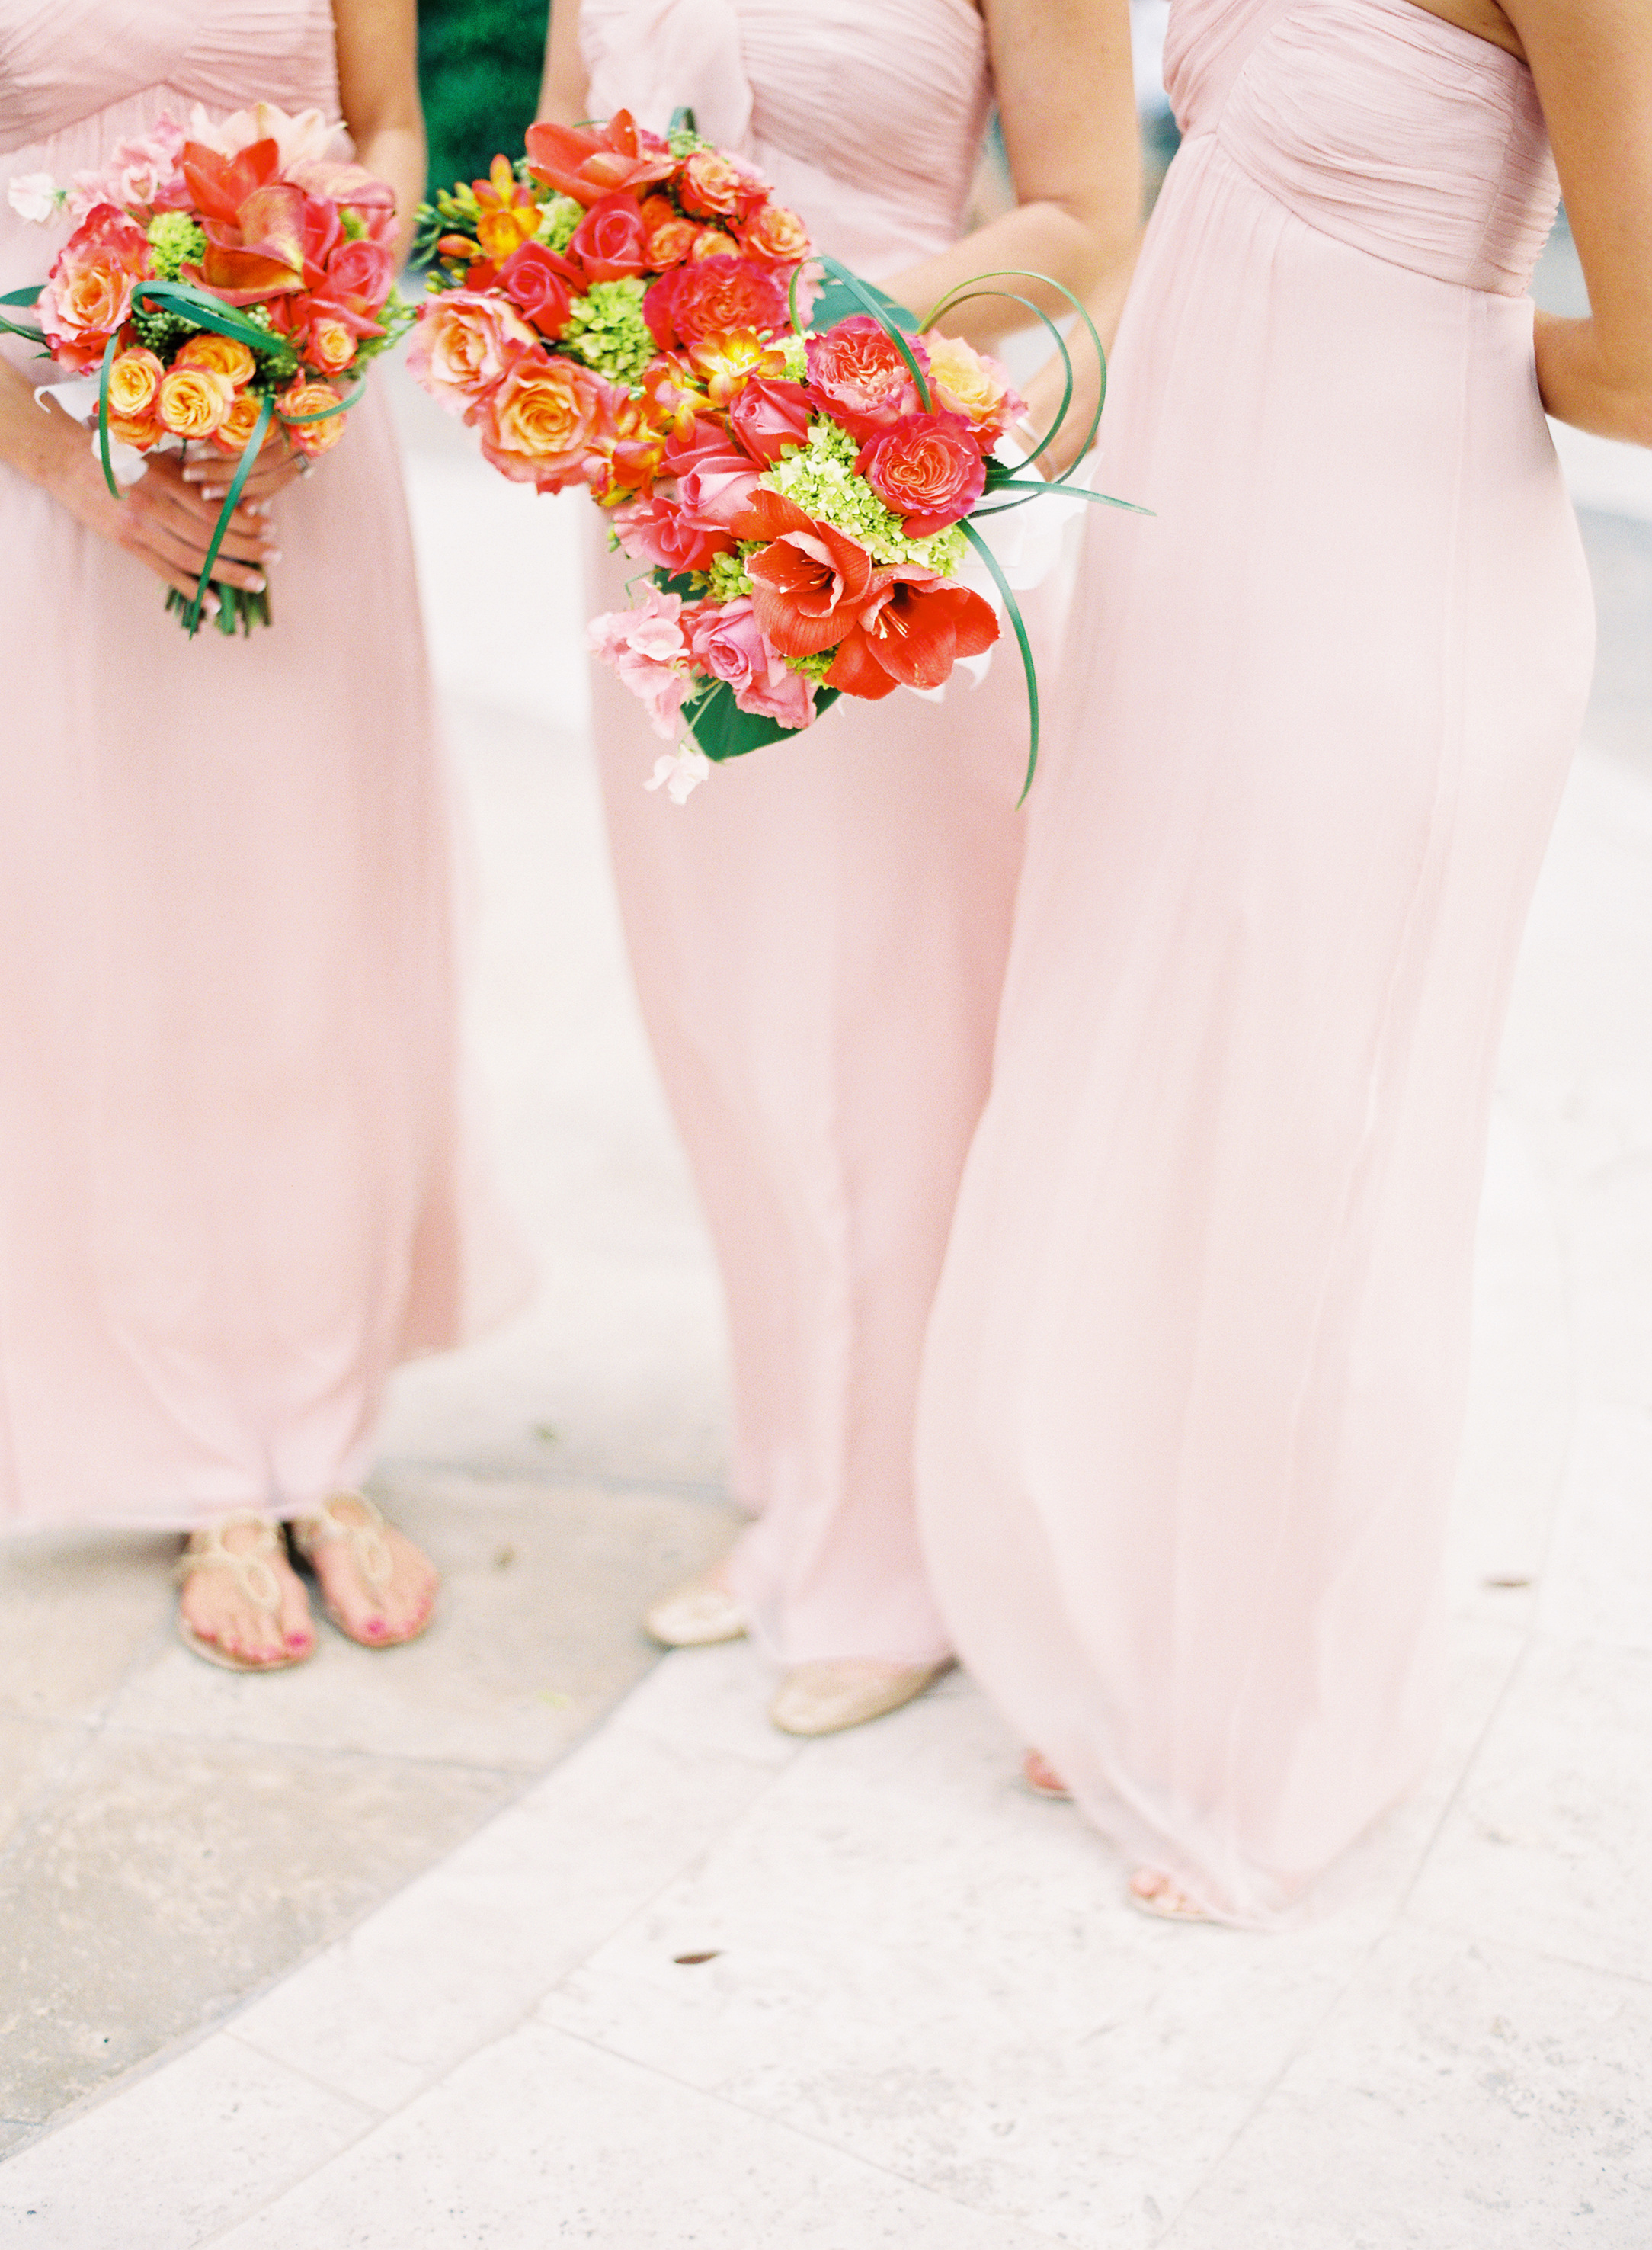 Flowers & Decor, Bridesmaids Dresses, Real Weddings, pink, Bridesmaid Bouquets, Classic, Southern Real Weddings, Elegant, Florida, Southern weddings, florida real weddings, florida weddings